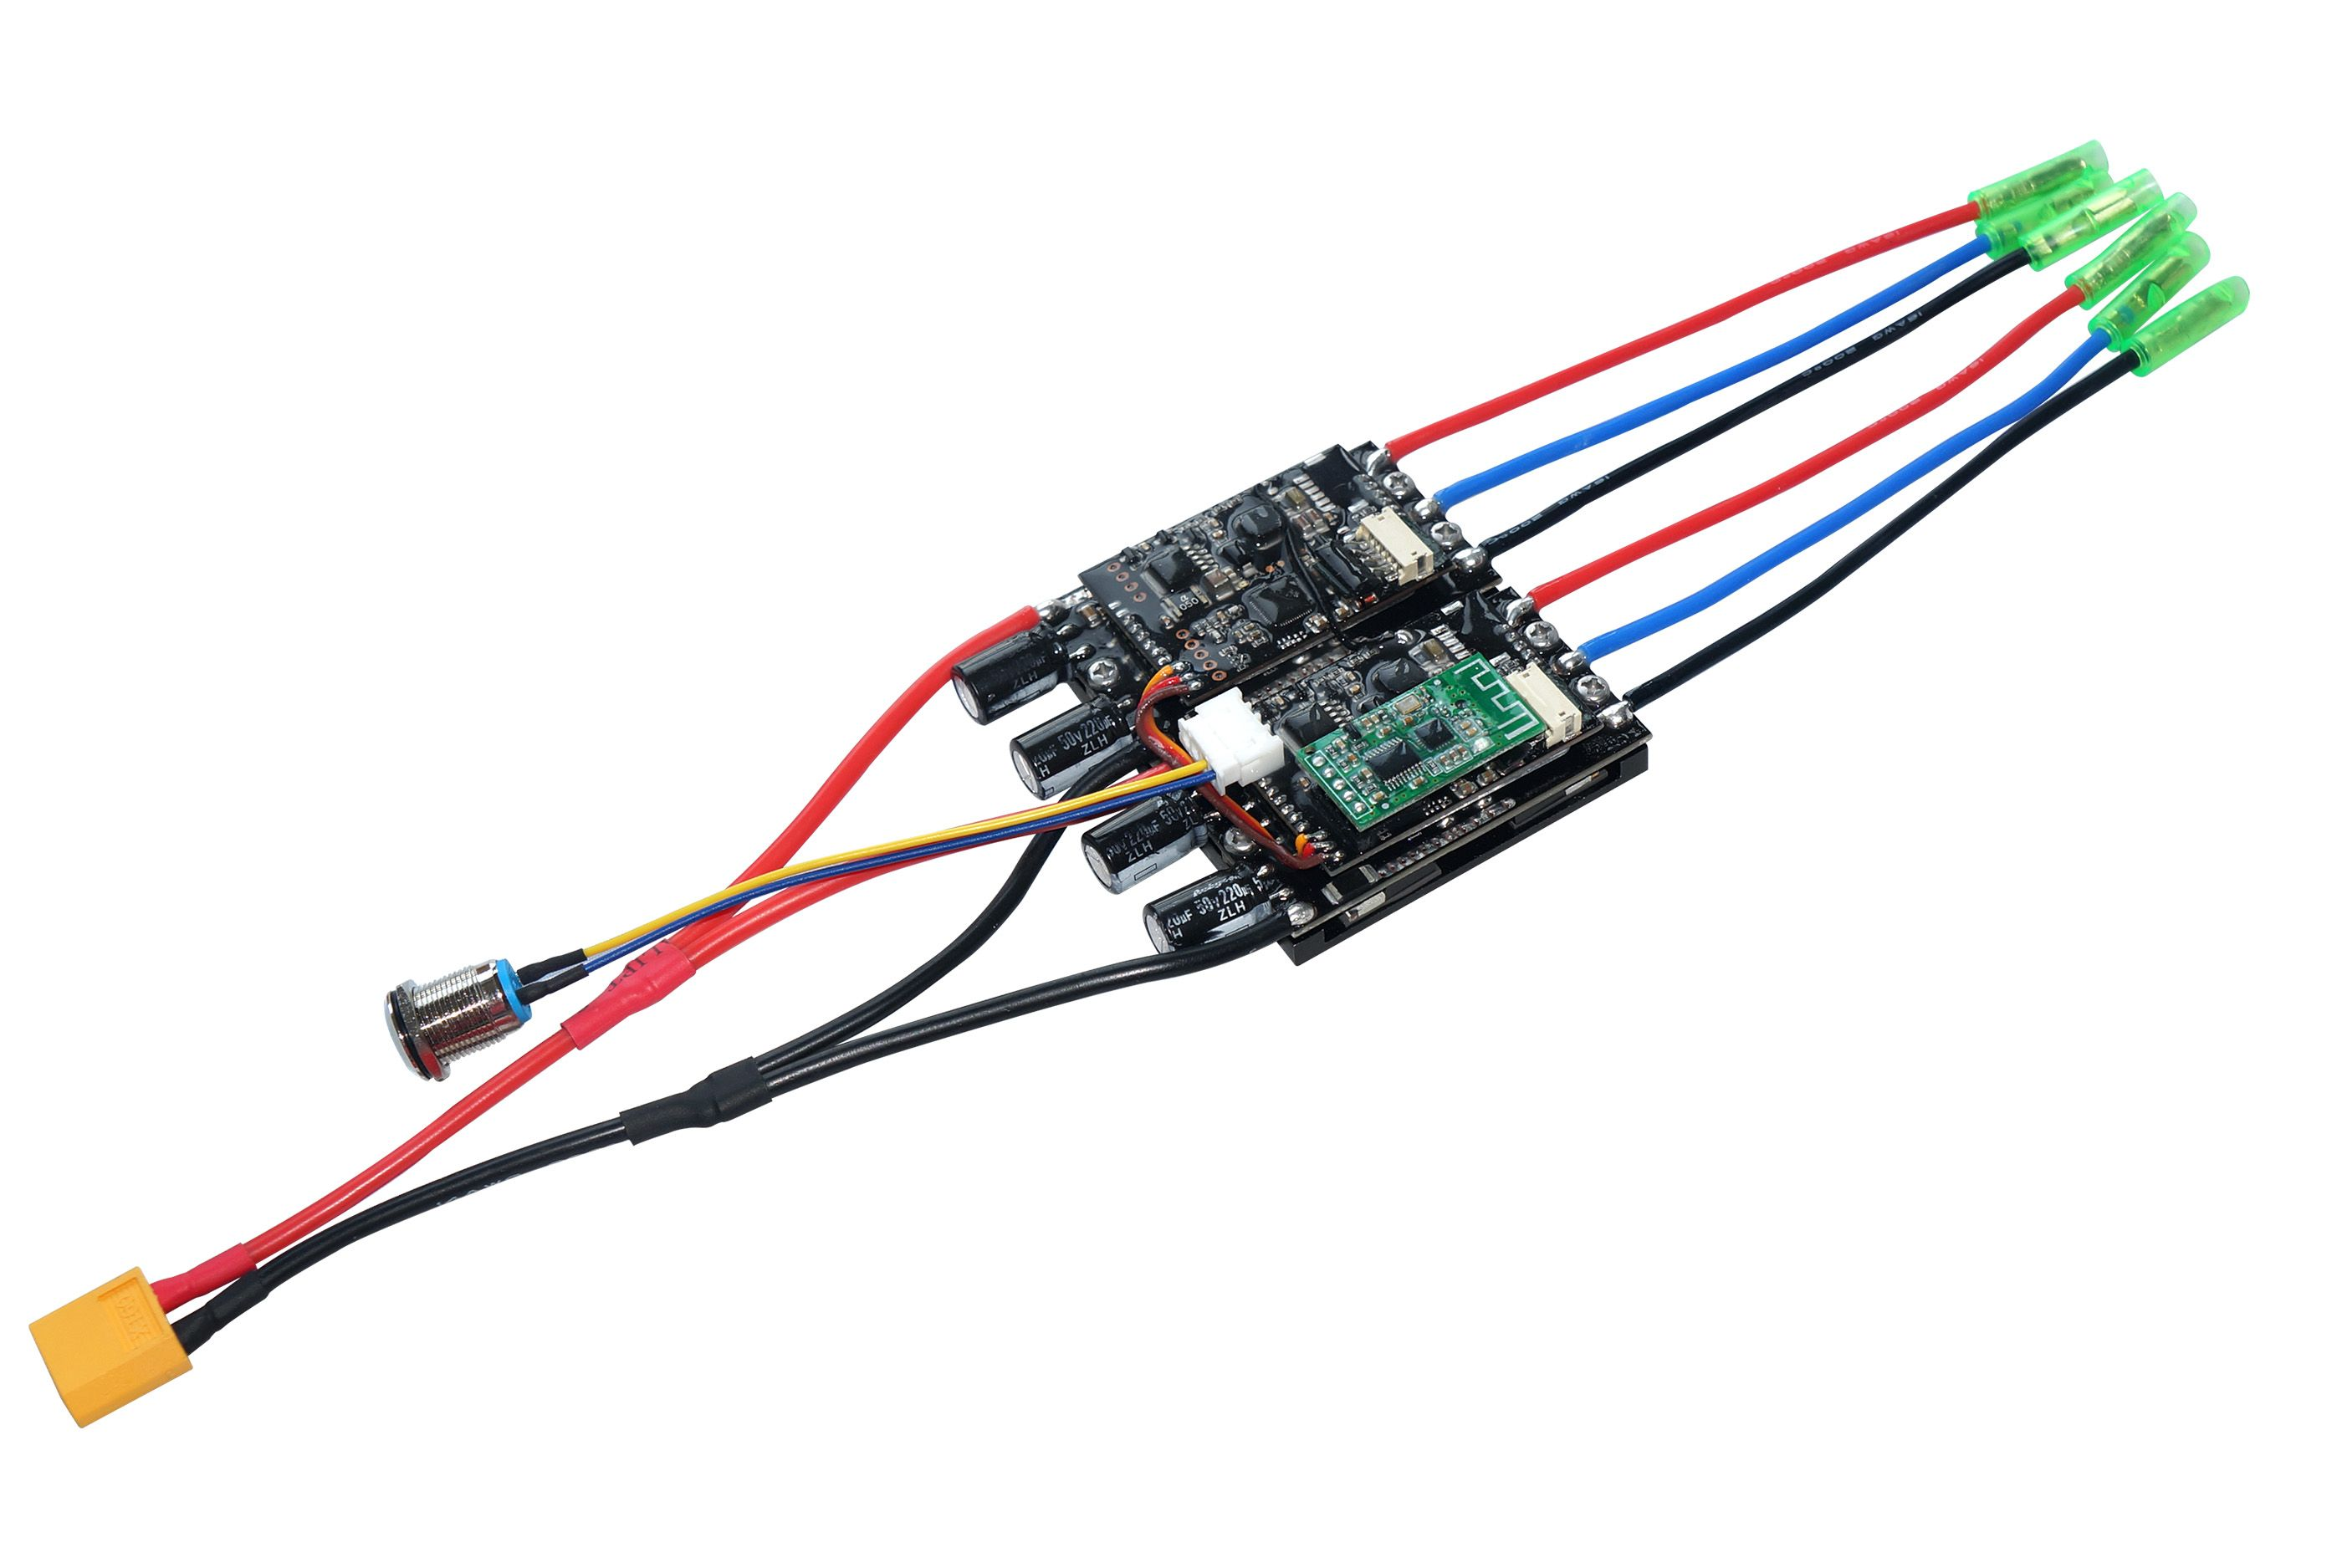 Maytech newest dual esc for hub motor and pulley motor, work well